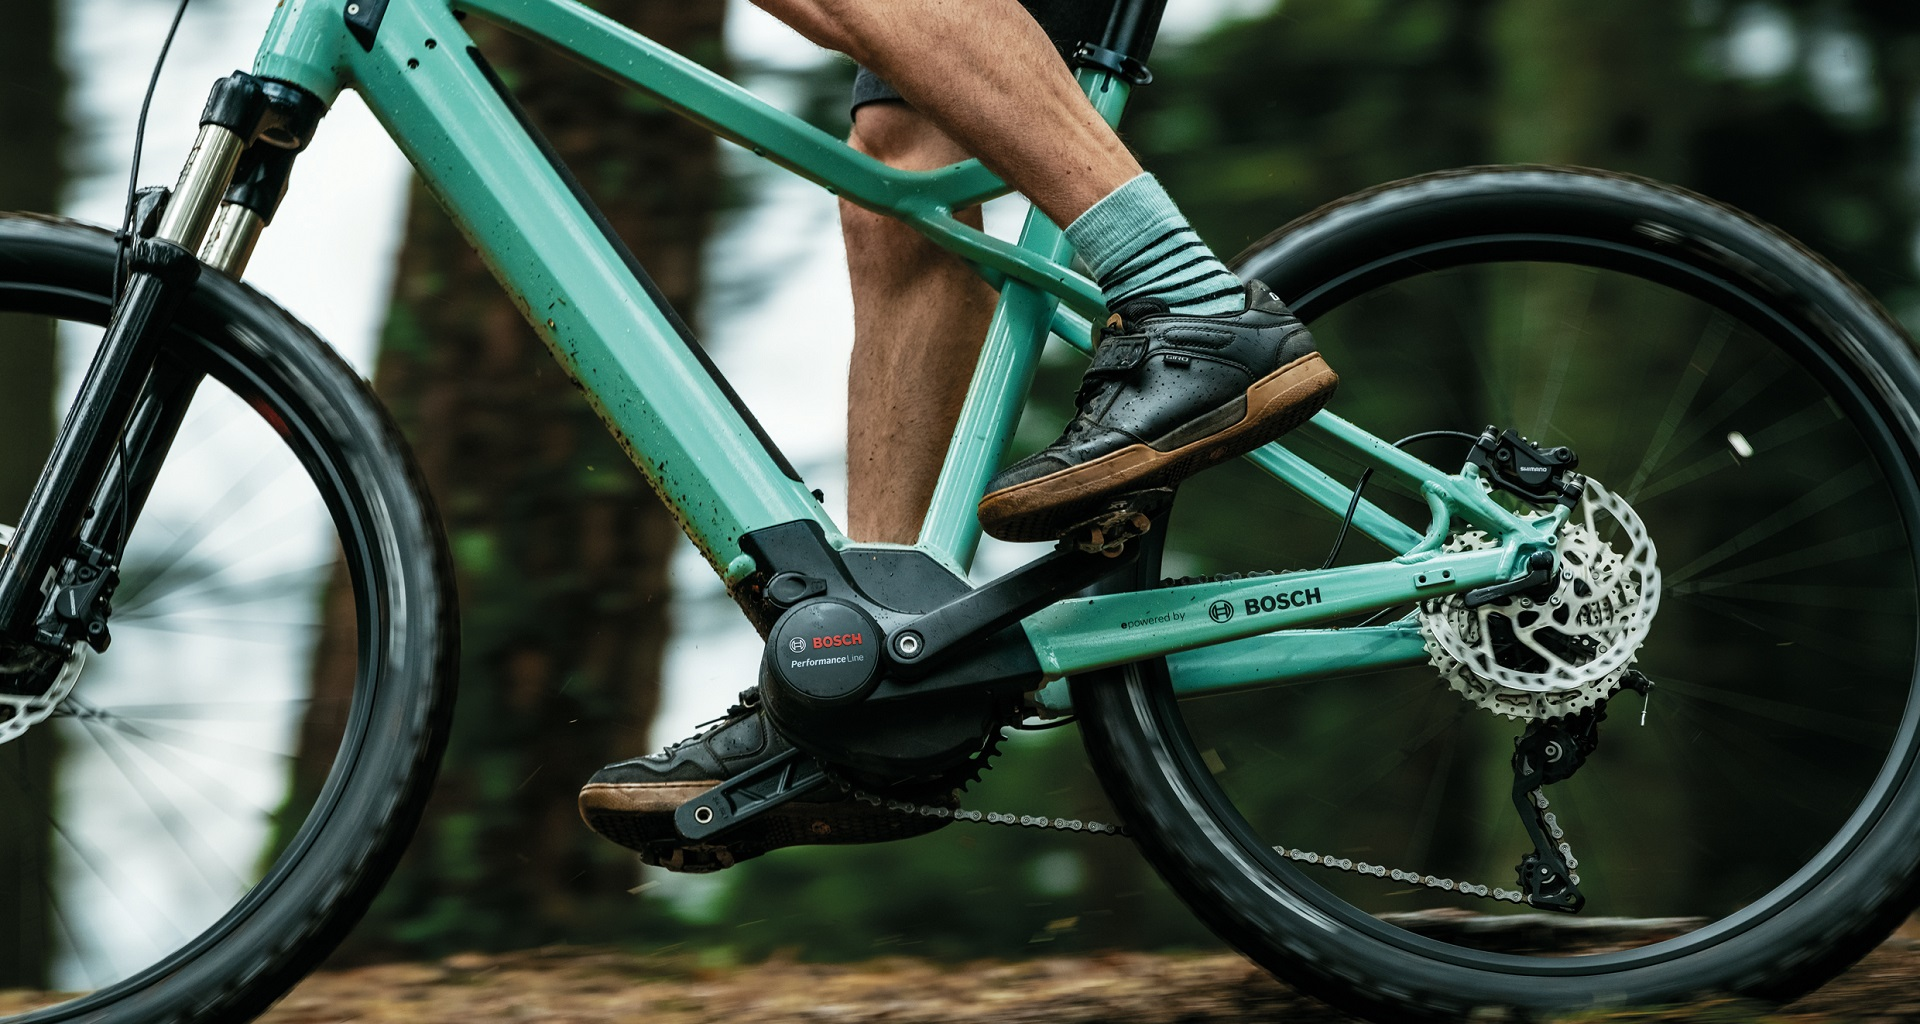 what are the most crucial ebike parts